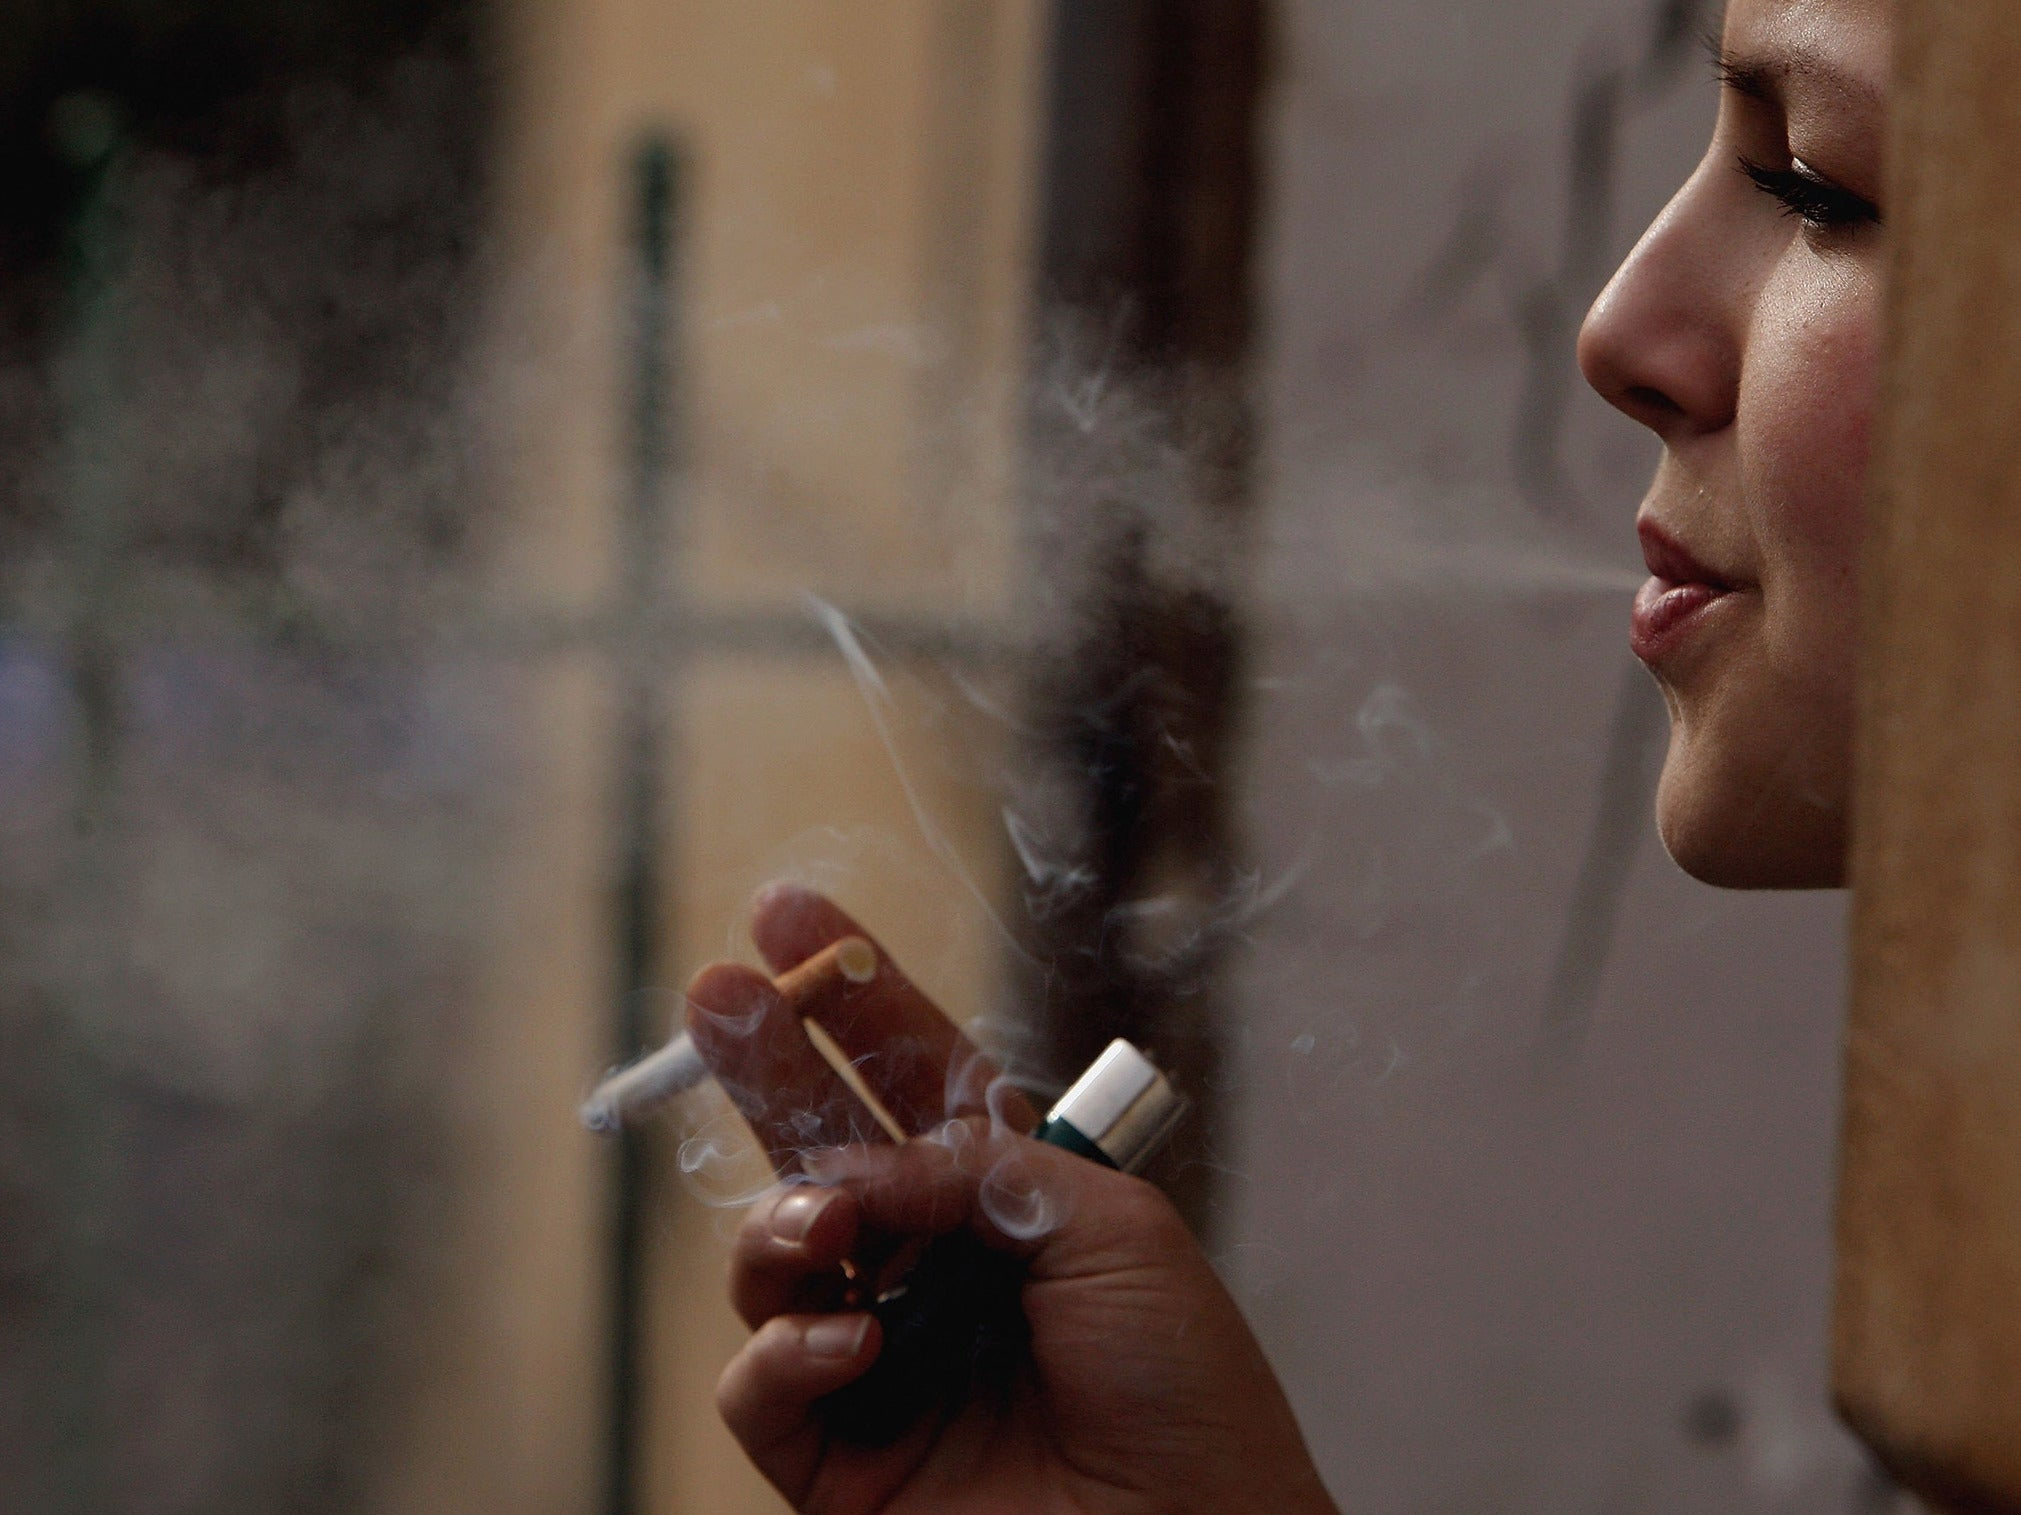 Tobacco salesman given 1,200 free cigarettes a month has inoperable lung cancer